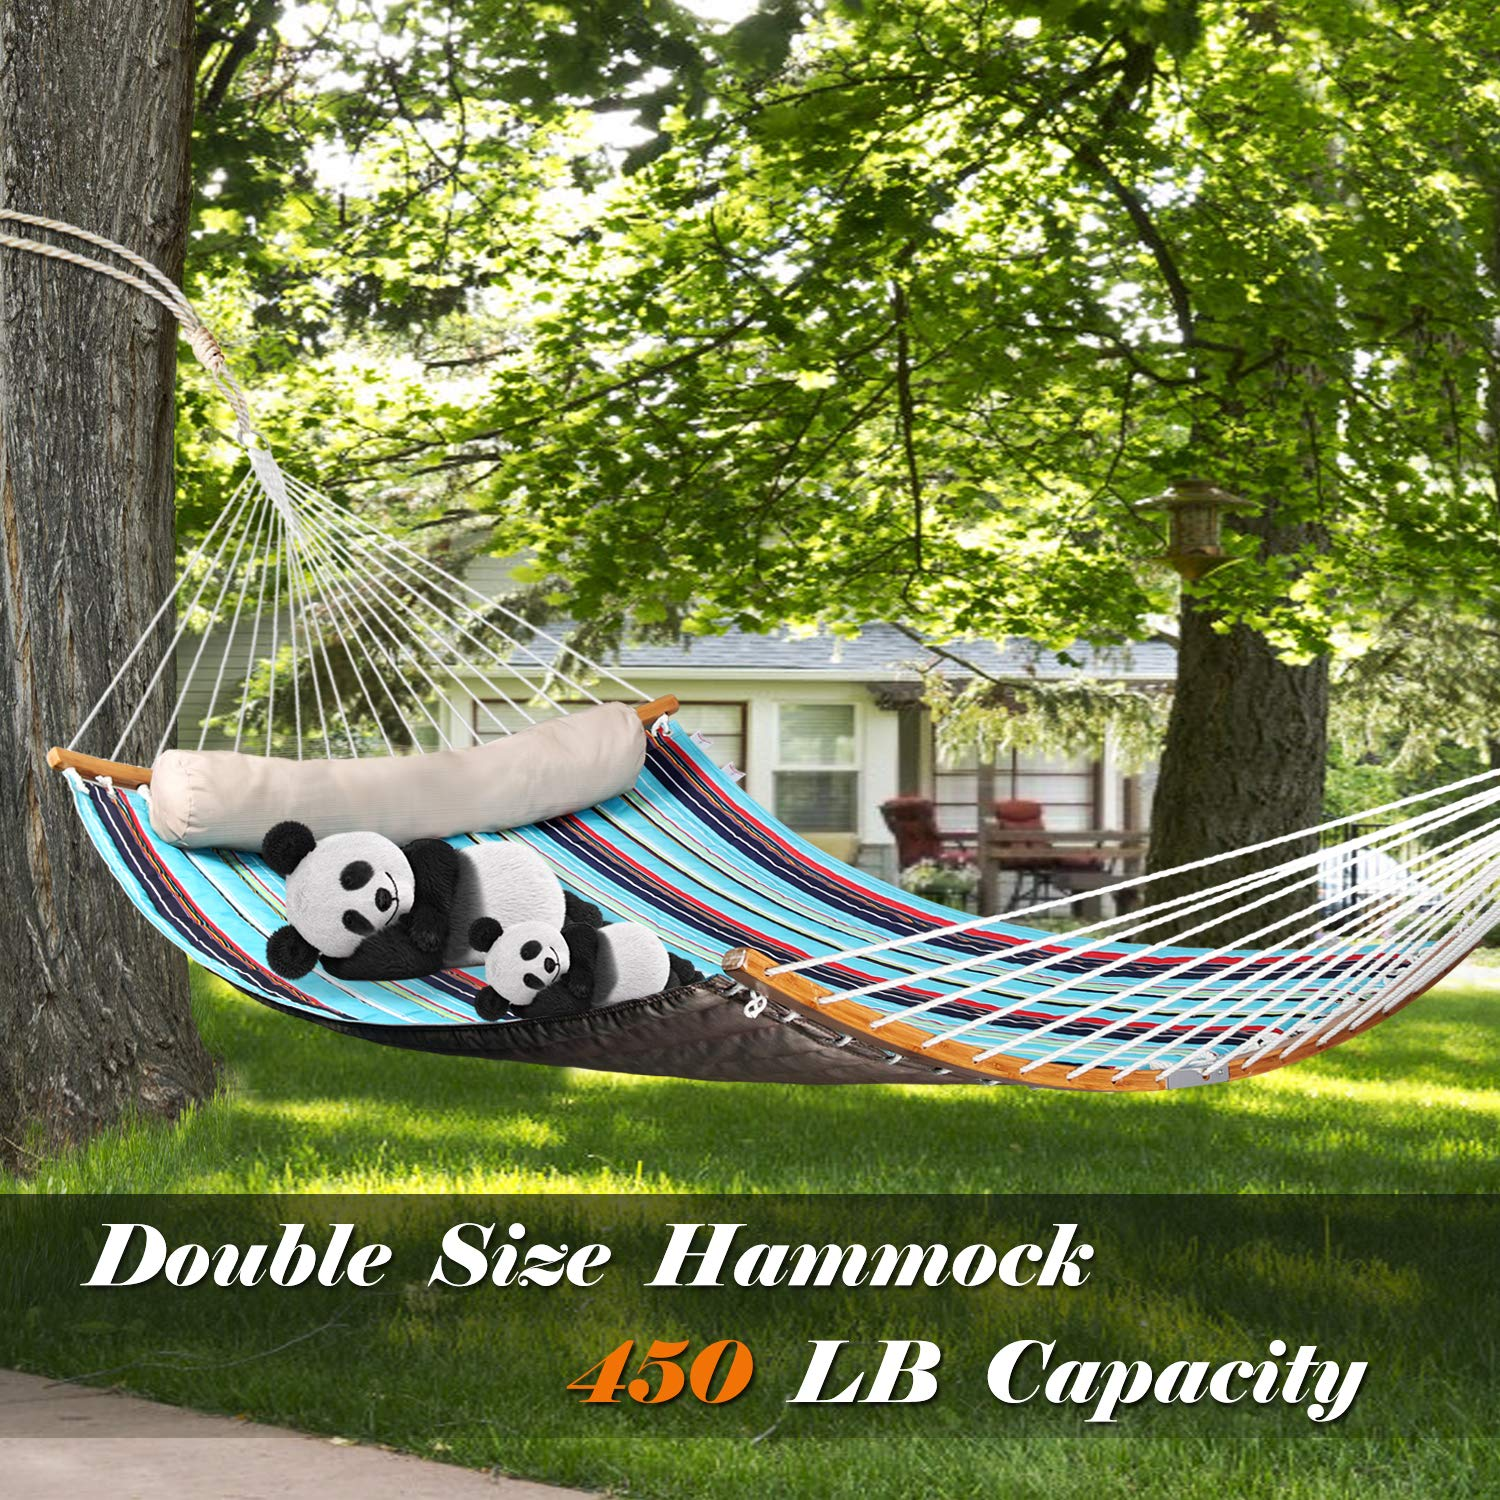 Bathonly 2019 New Double Hammock w Foldable Bar Detachable Pillow, Curved Bar Design Portable Camping Hammock Swing w Small Carrying Bag, Quilted Durable Fabric, Royal Blue